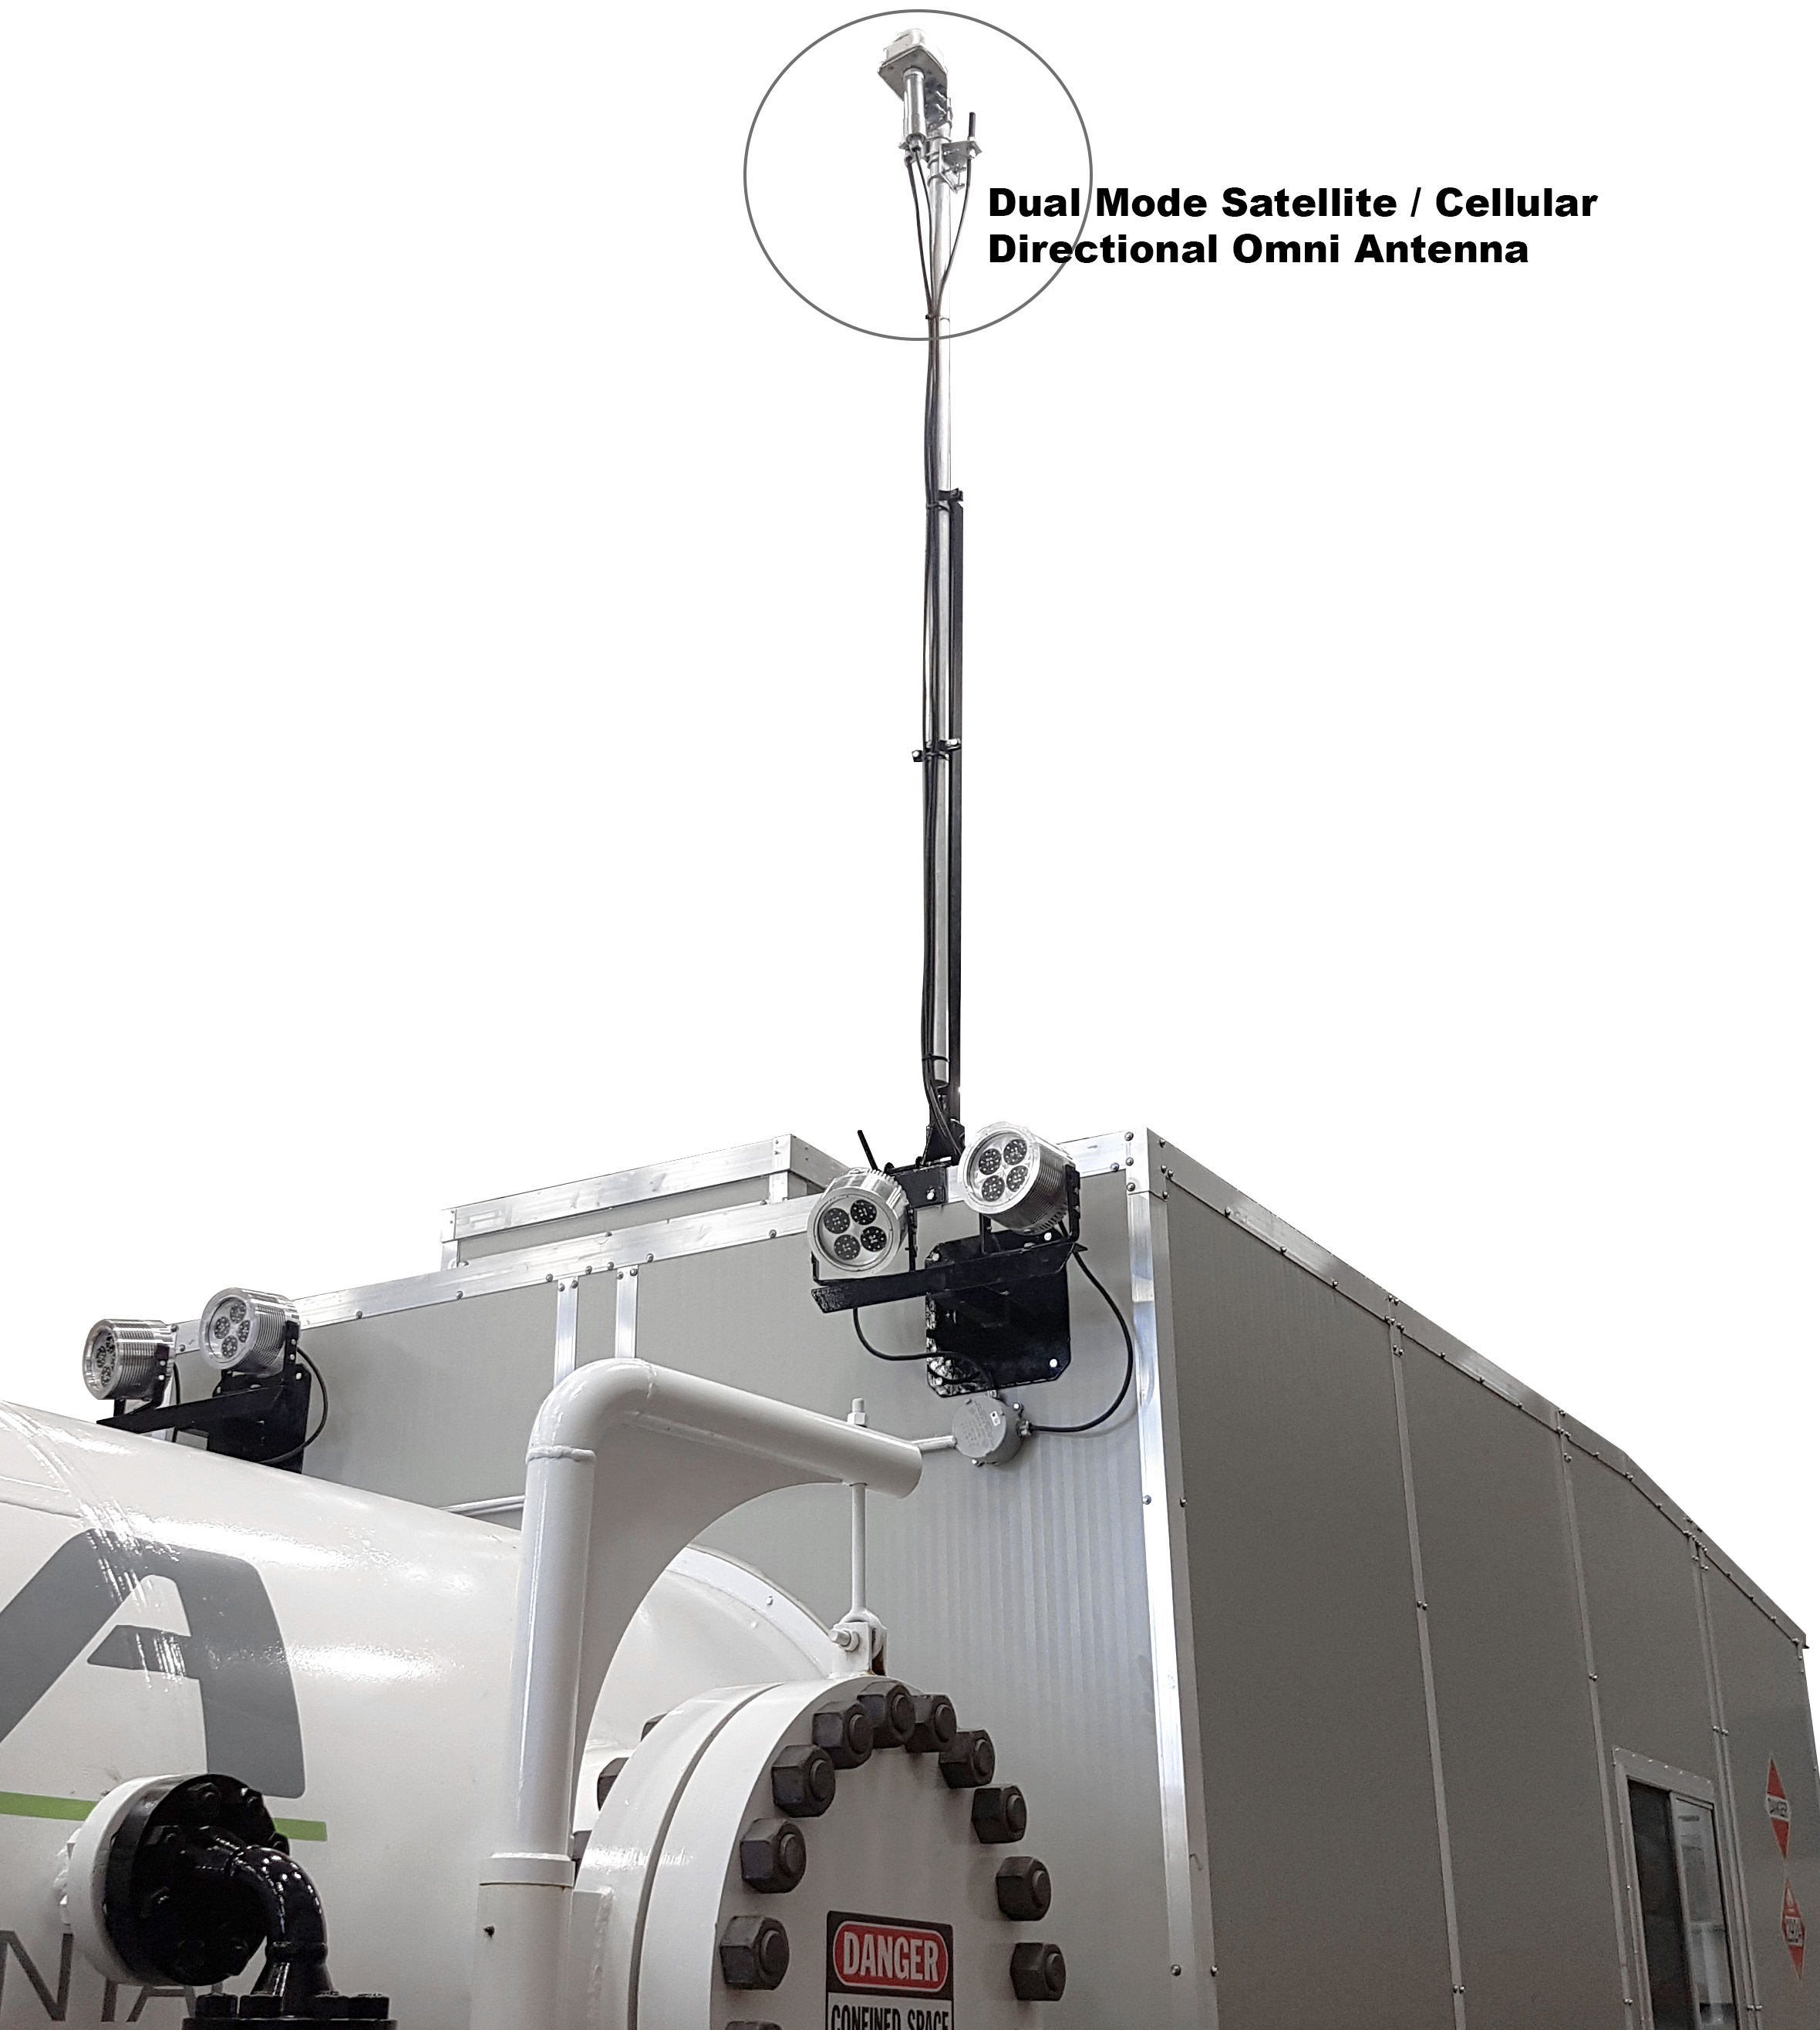 production-facility-equipment-dual-mode-satellite-cellular-communication